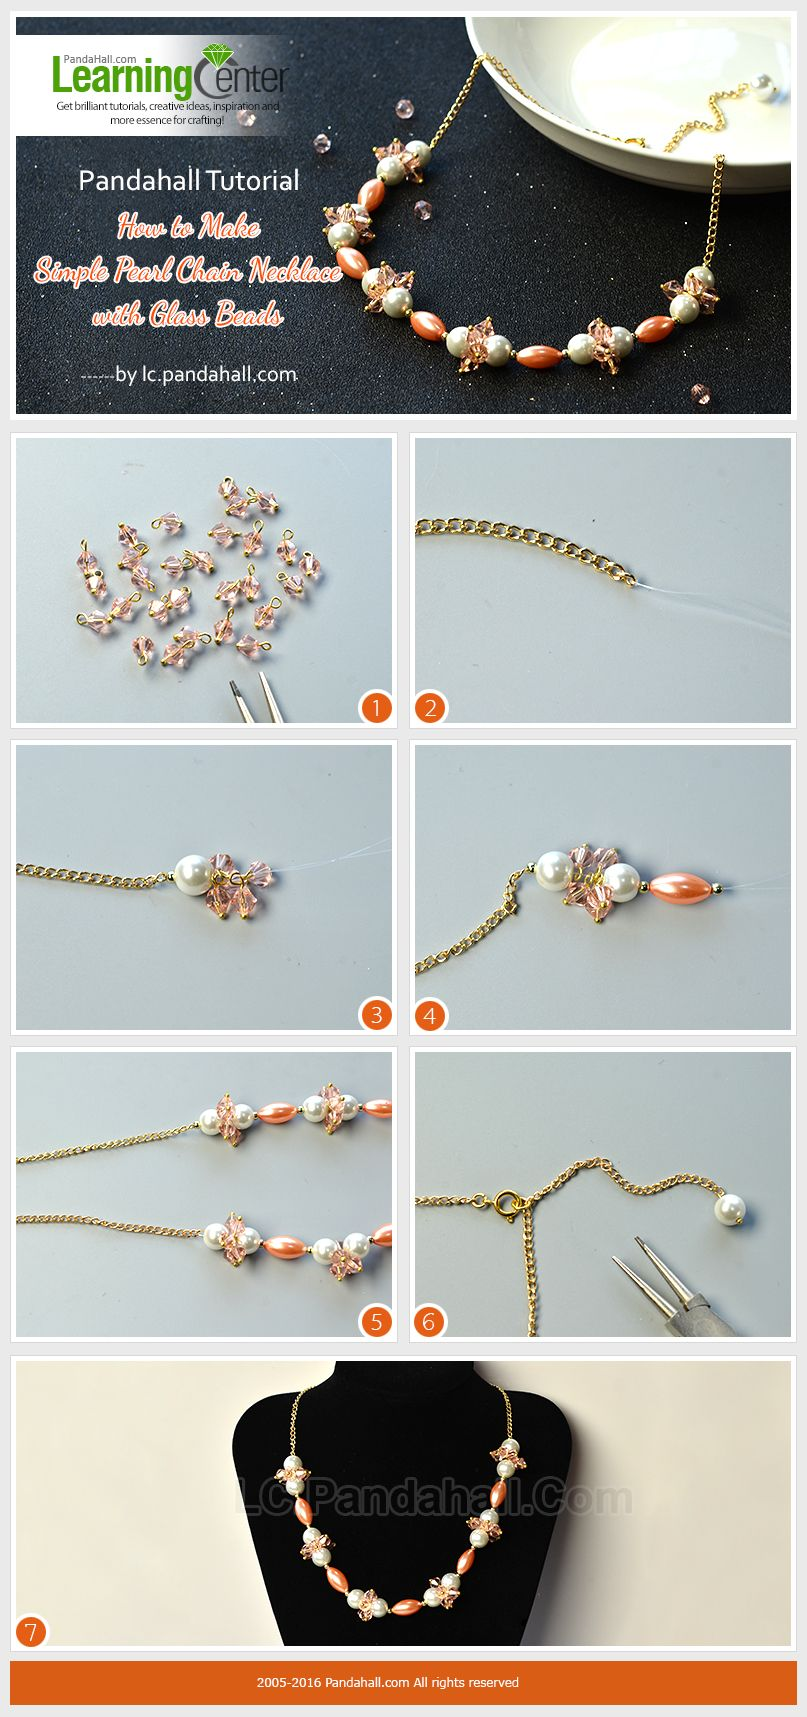 Pandahall Tutorial How to Make Simple Pearl Chain Necklace